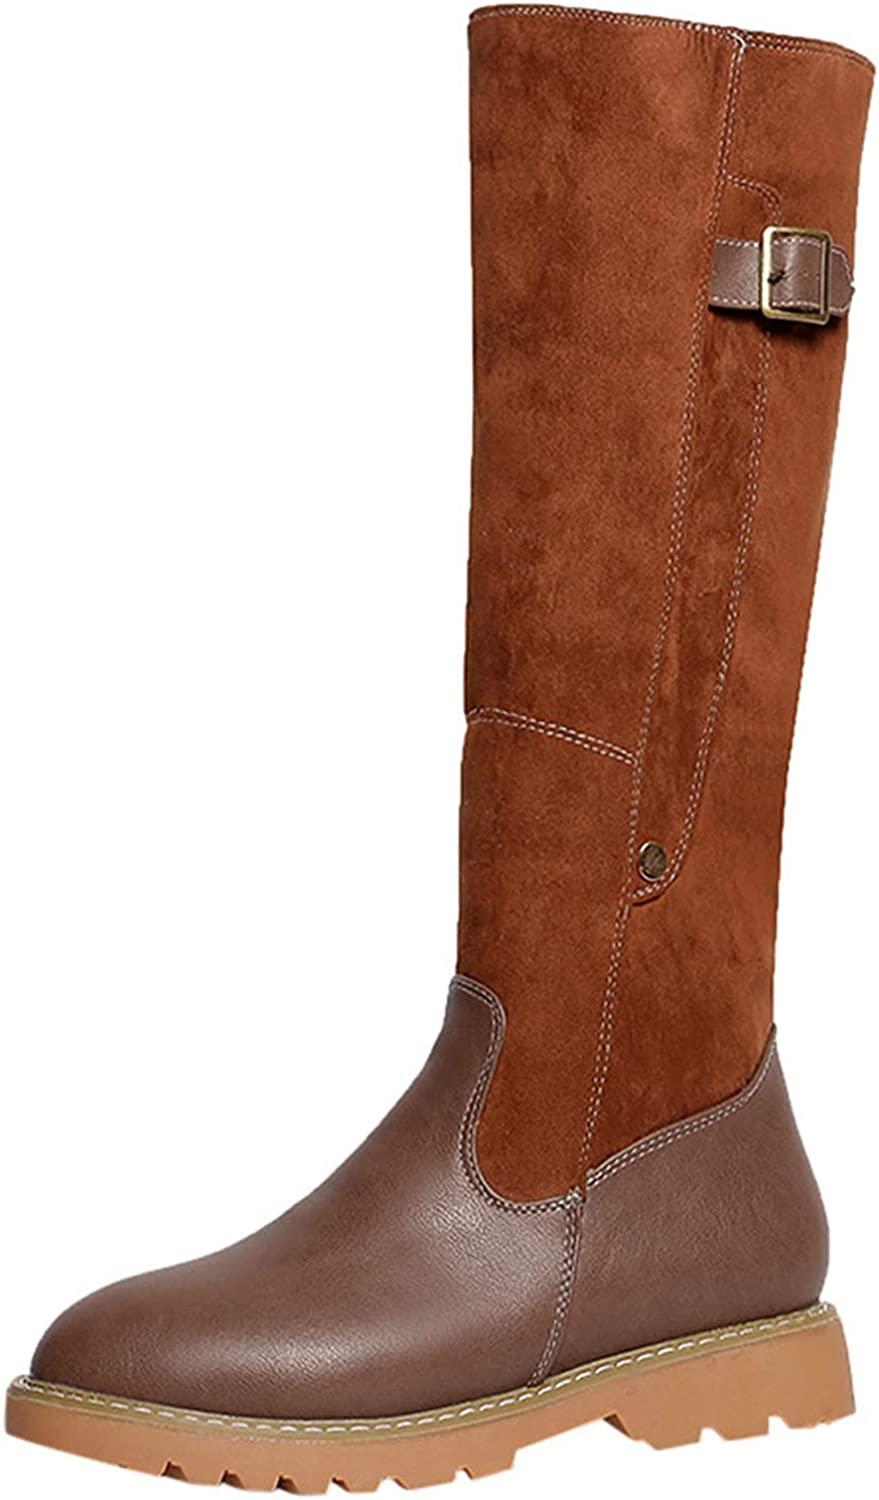 Boots For Women Fashion Wide Calf Square Heel Zipper Leather Boo